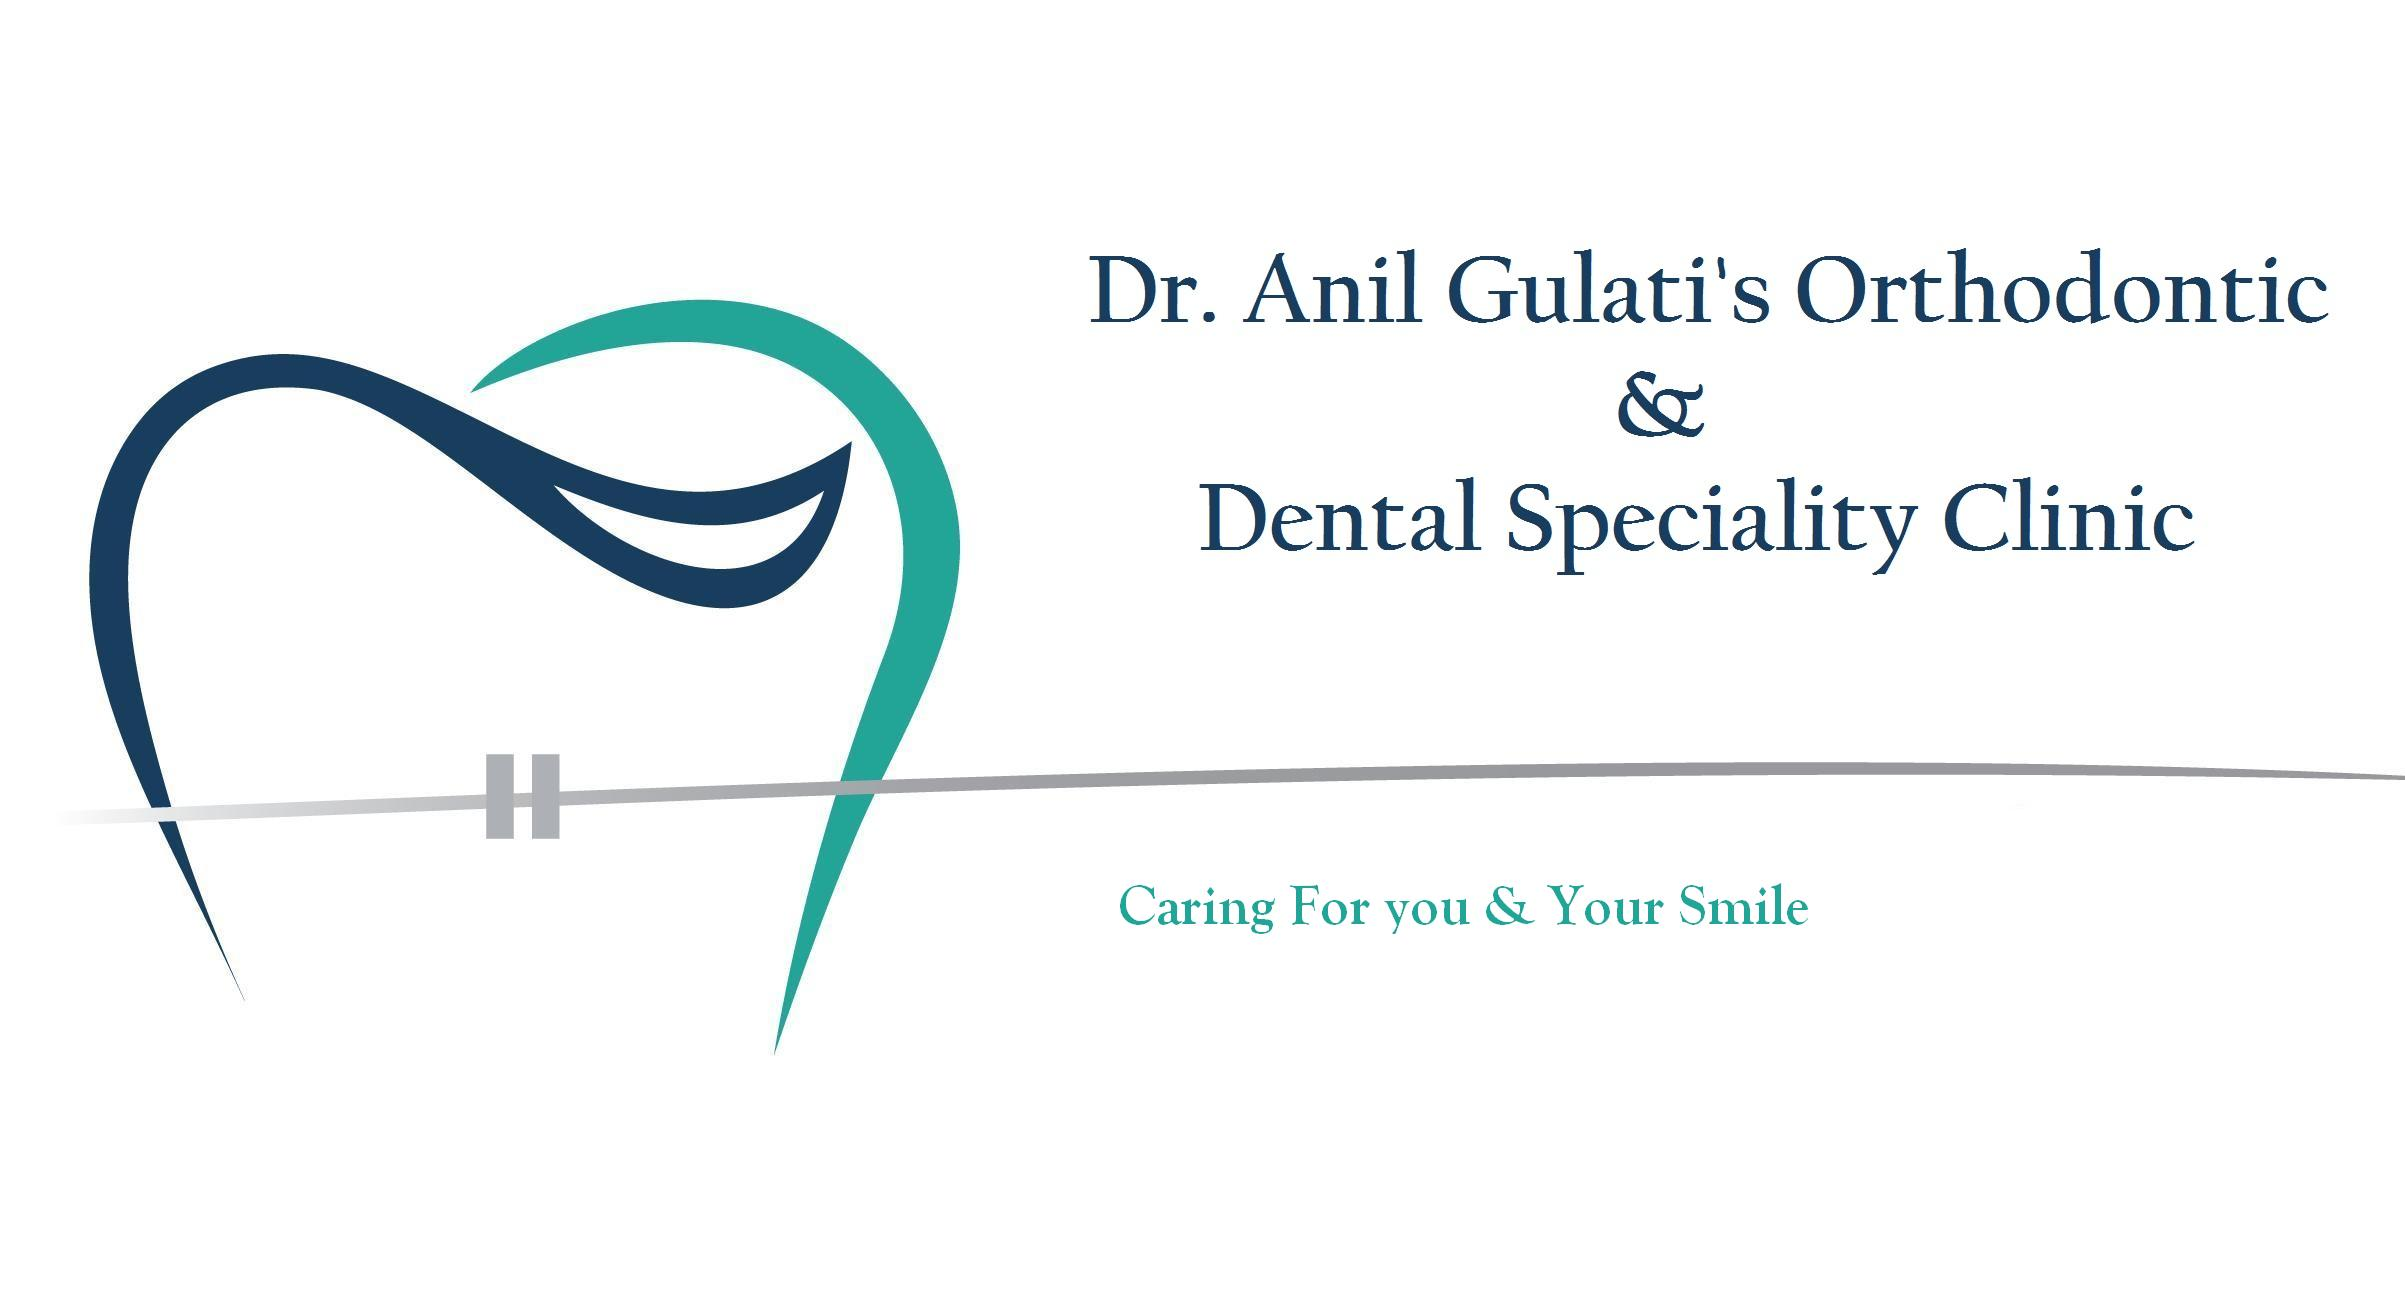 Dr. Anil Gulati's Orthodontic & Dental Speciality Clinic